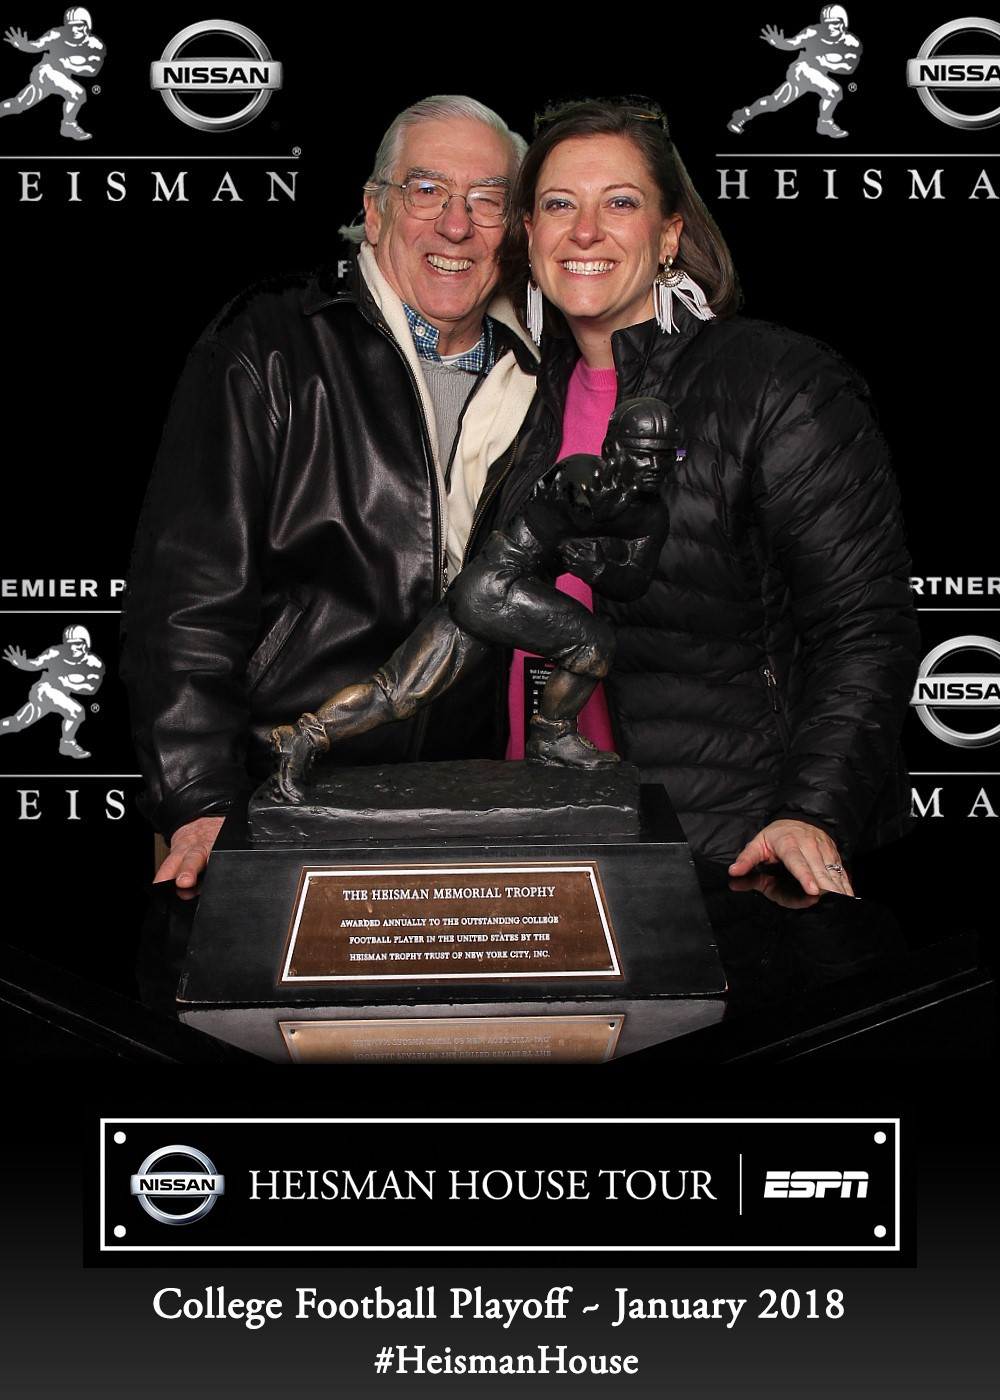 Tom Oder and daughter Olivia Banks with the Heisman Trophy at the Heisman House at the Fan Appreciation at the College Football Playoff experience outside Mercedes-Benz Stadium.